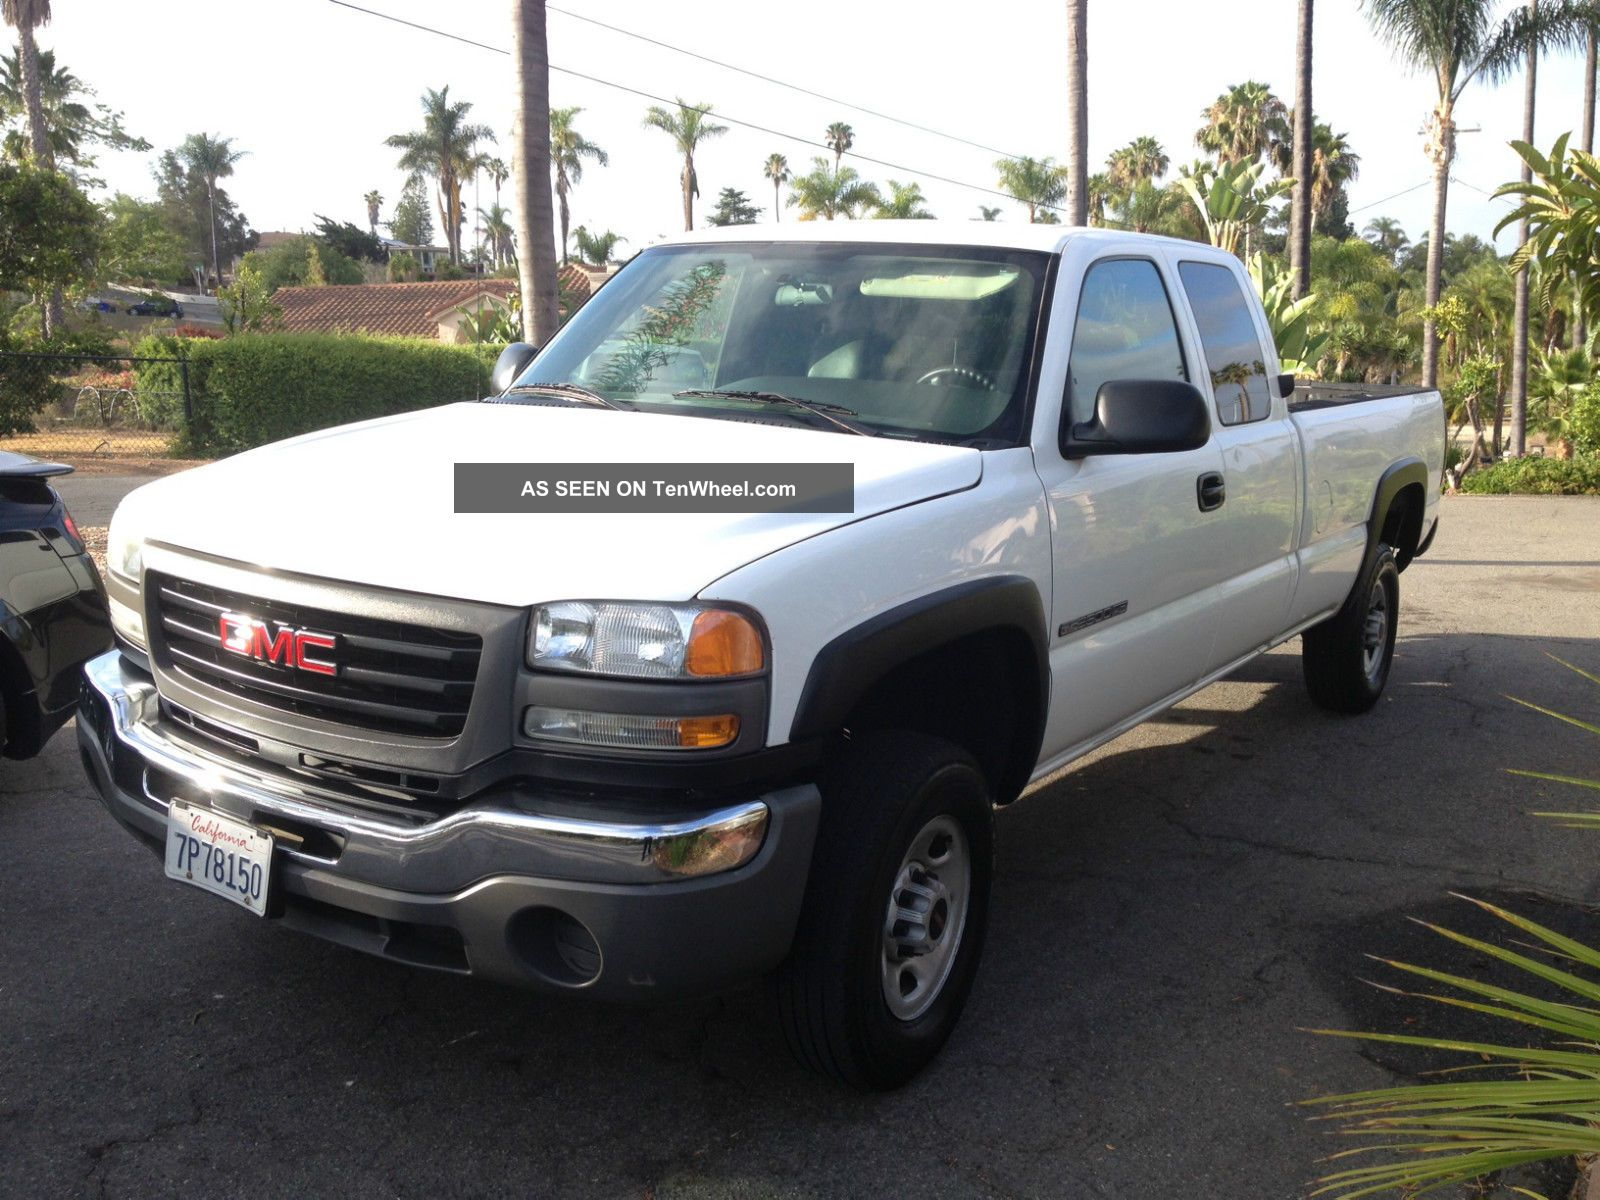 2004 Gmc Sierra 2500 Hd Wt Extended Cab Pickup 4 - Door 6.  0l Sierra 2500 photo